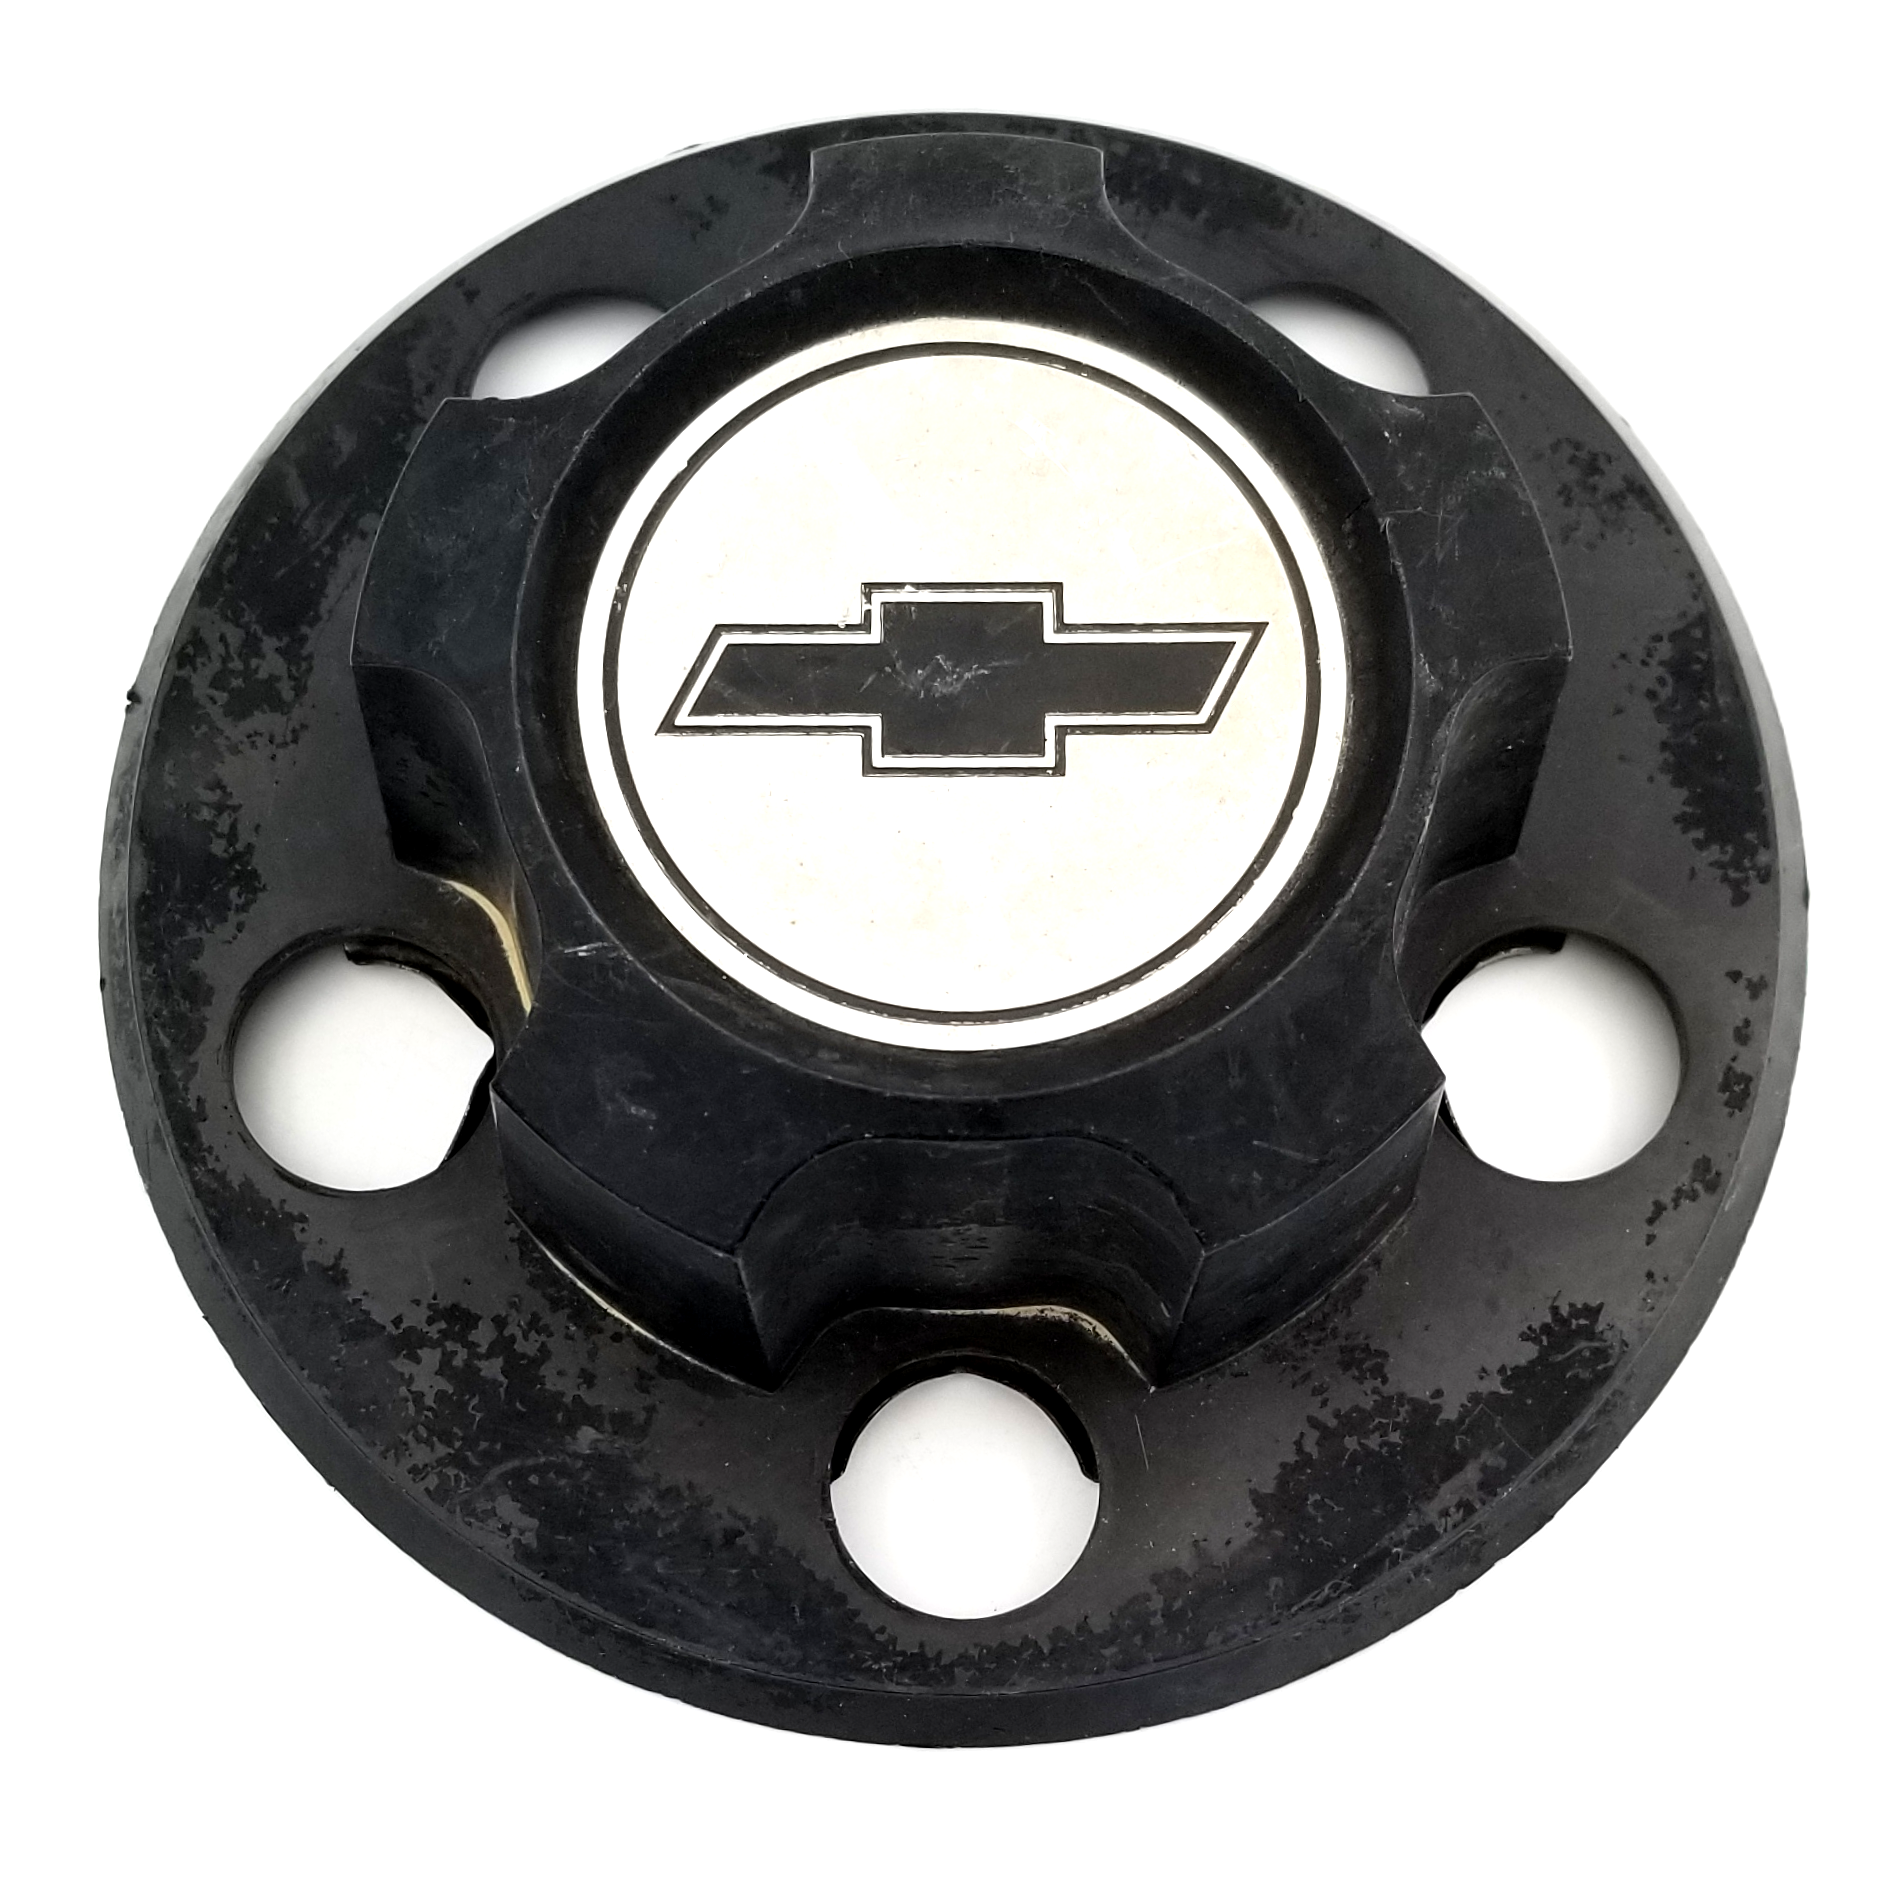 1985-1995 FORD MUSTANG center cap